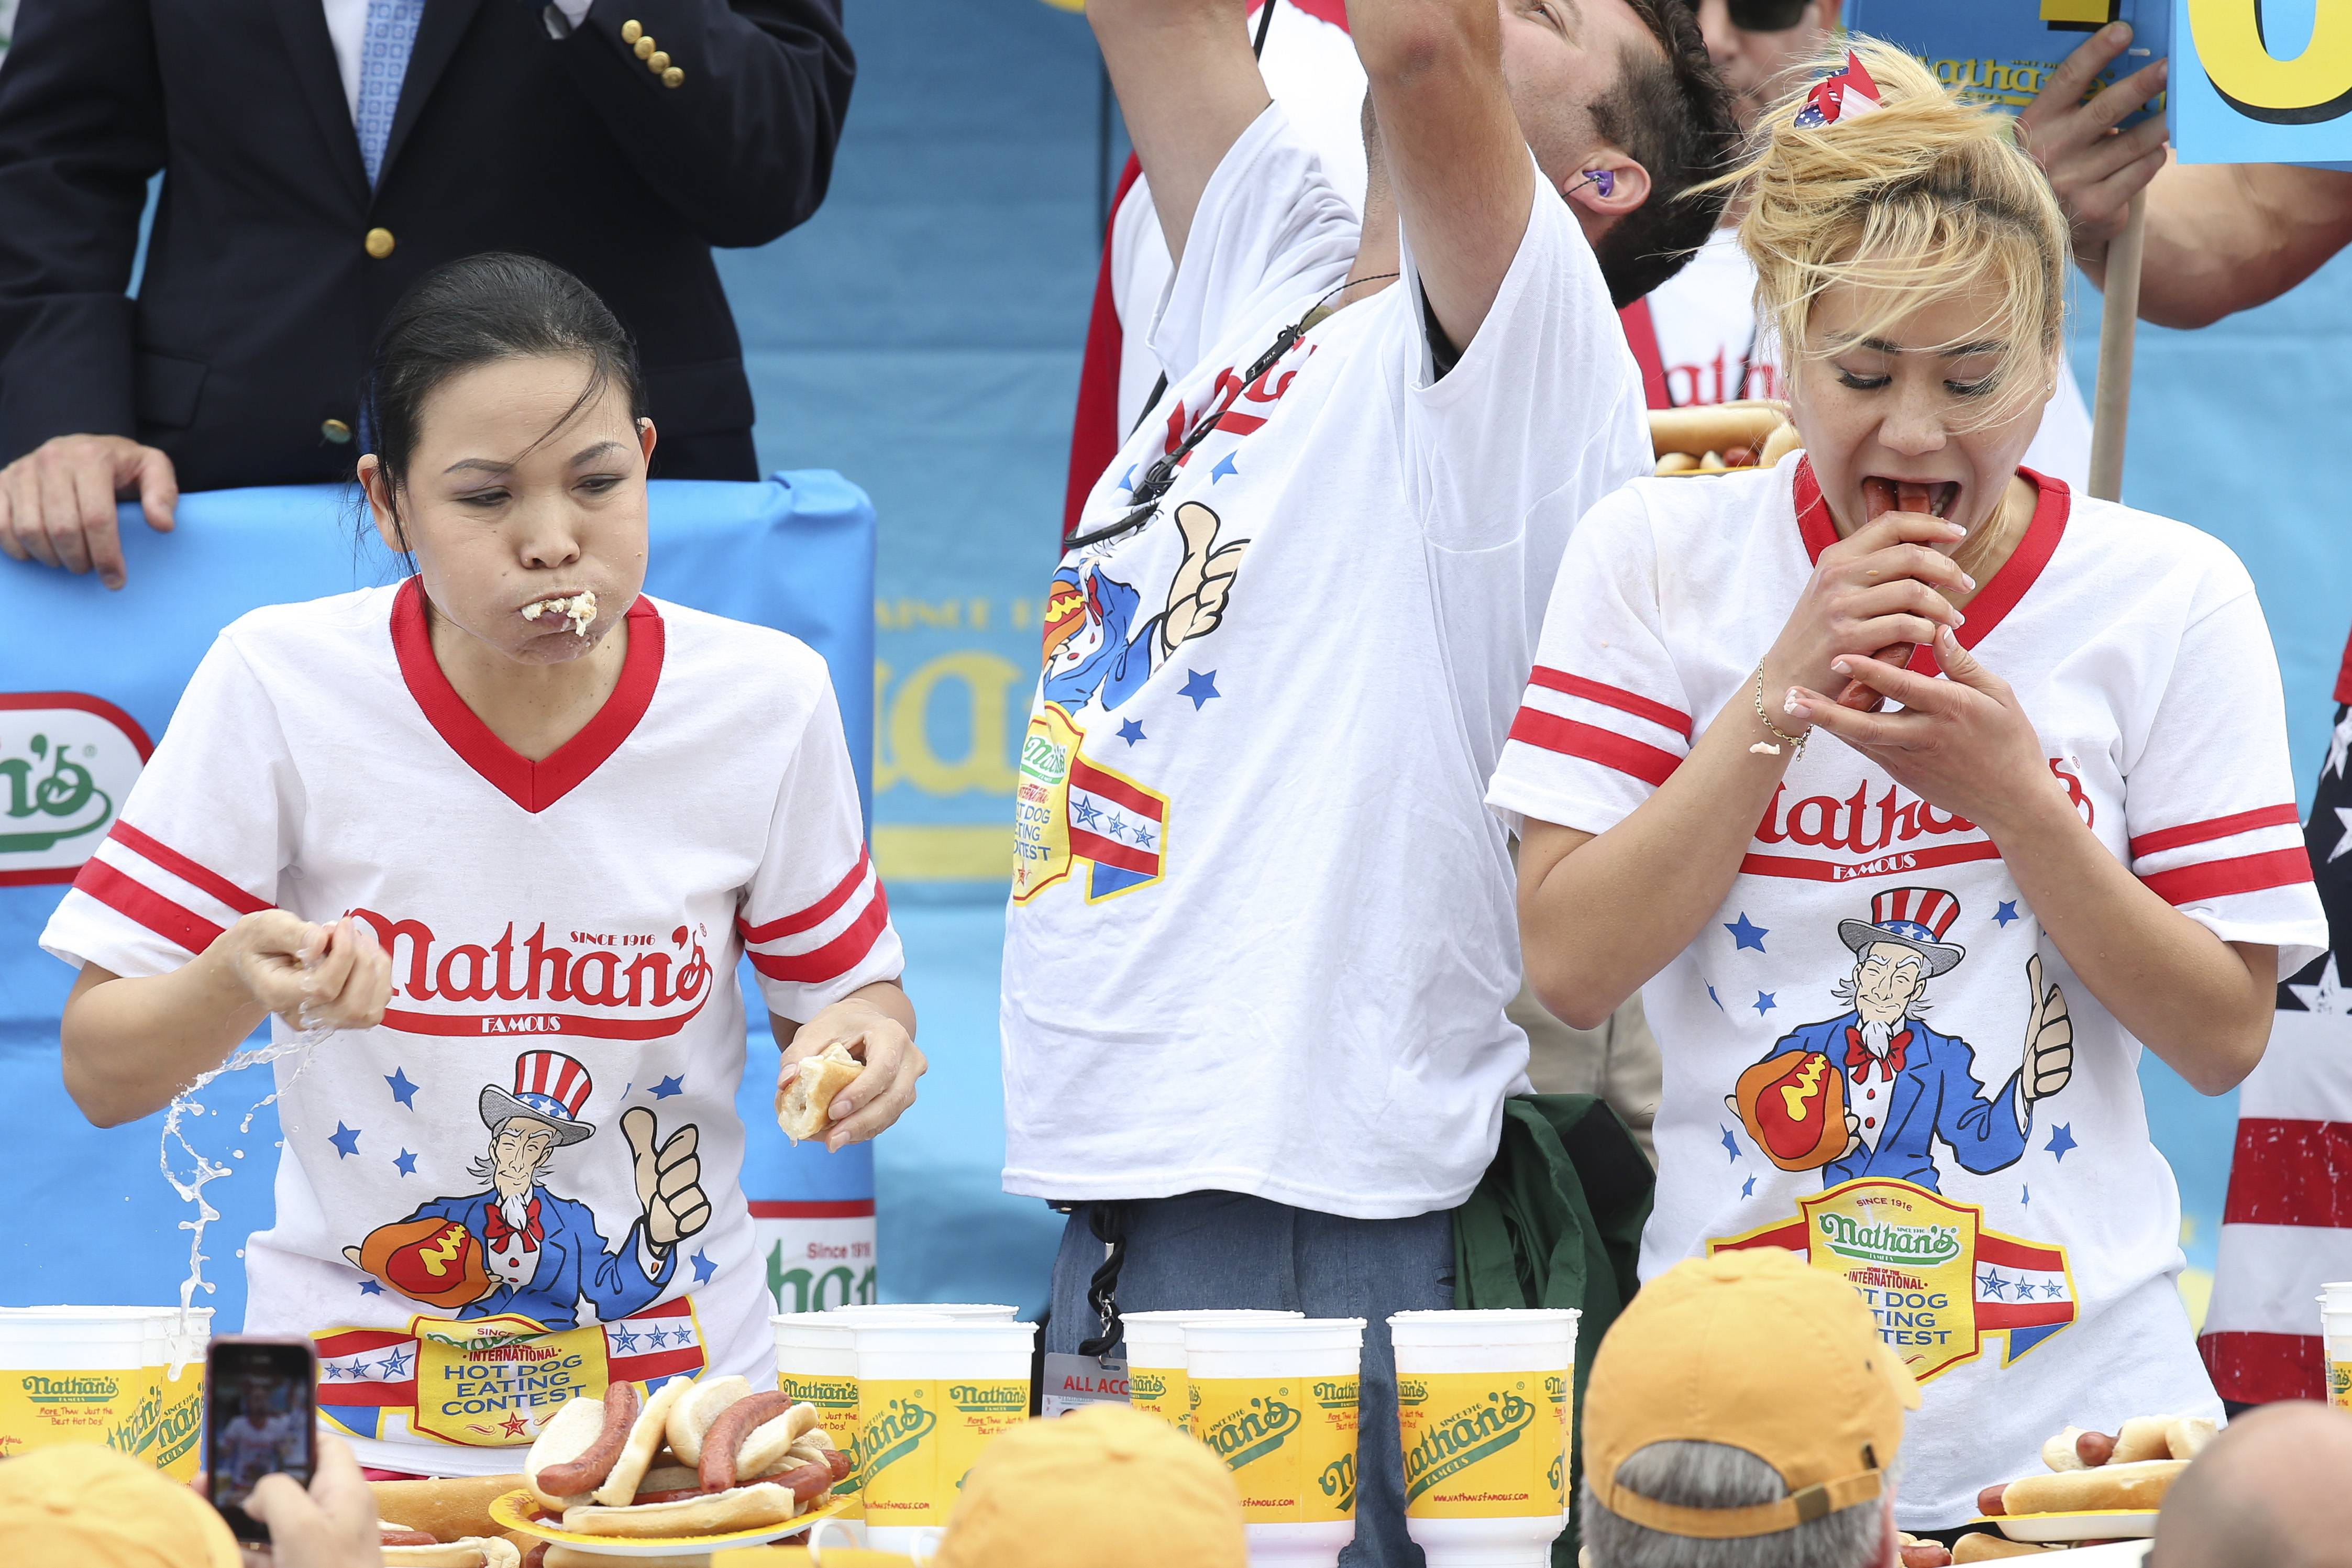 Sonya Thomas, left, and Miki Sudo, right, compete at the Nathan's Famous Fourth of July International Hot Dog Eating contest. Sudo defeated the reigning champion Thomas by eating 34 hot dogs and buns.